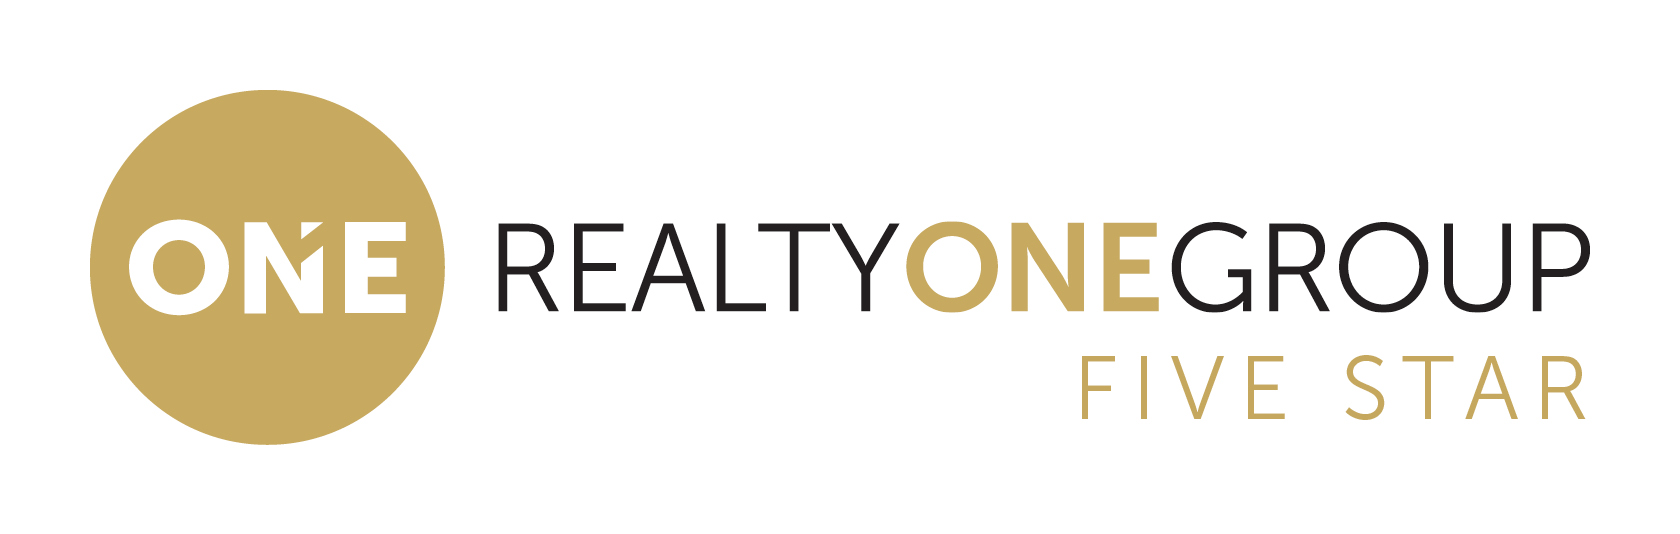 Realty One Group Five Star